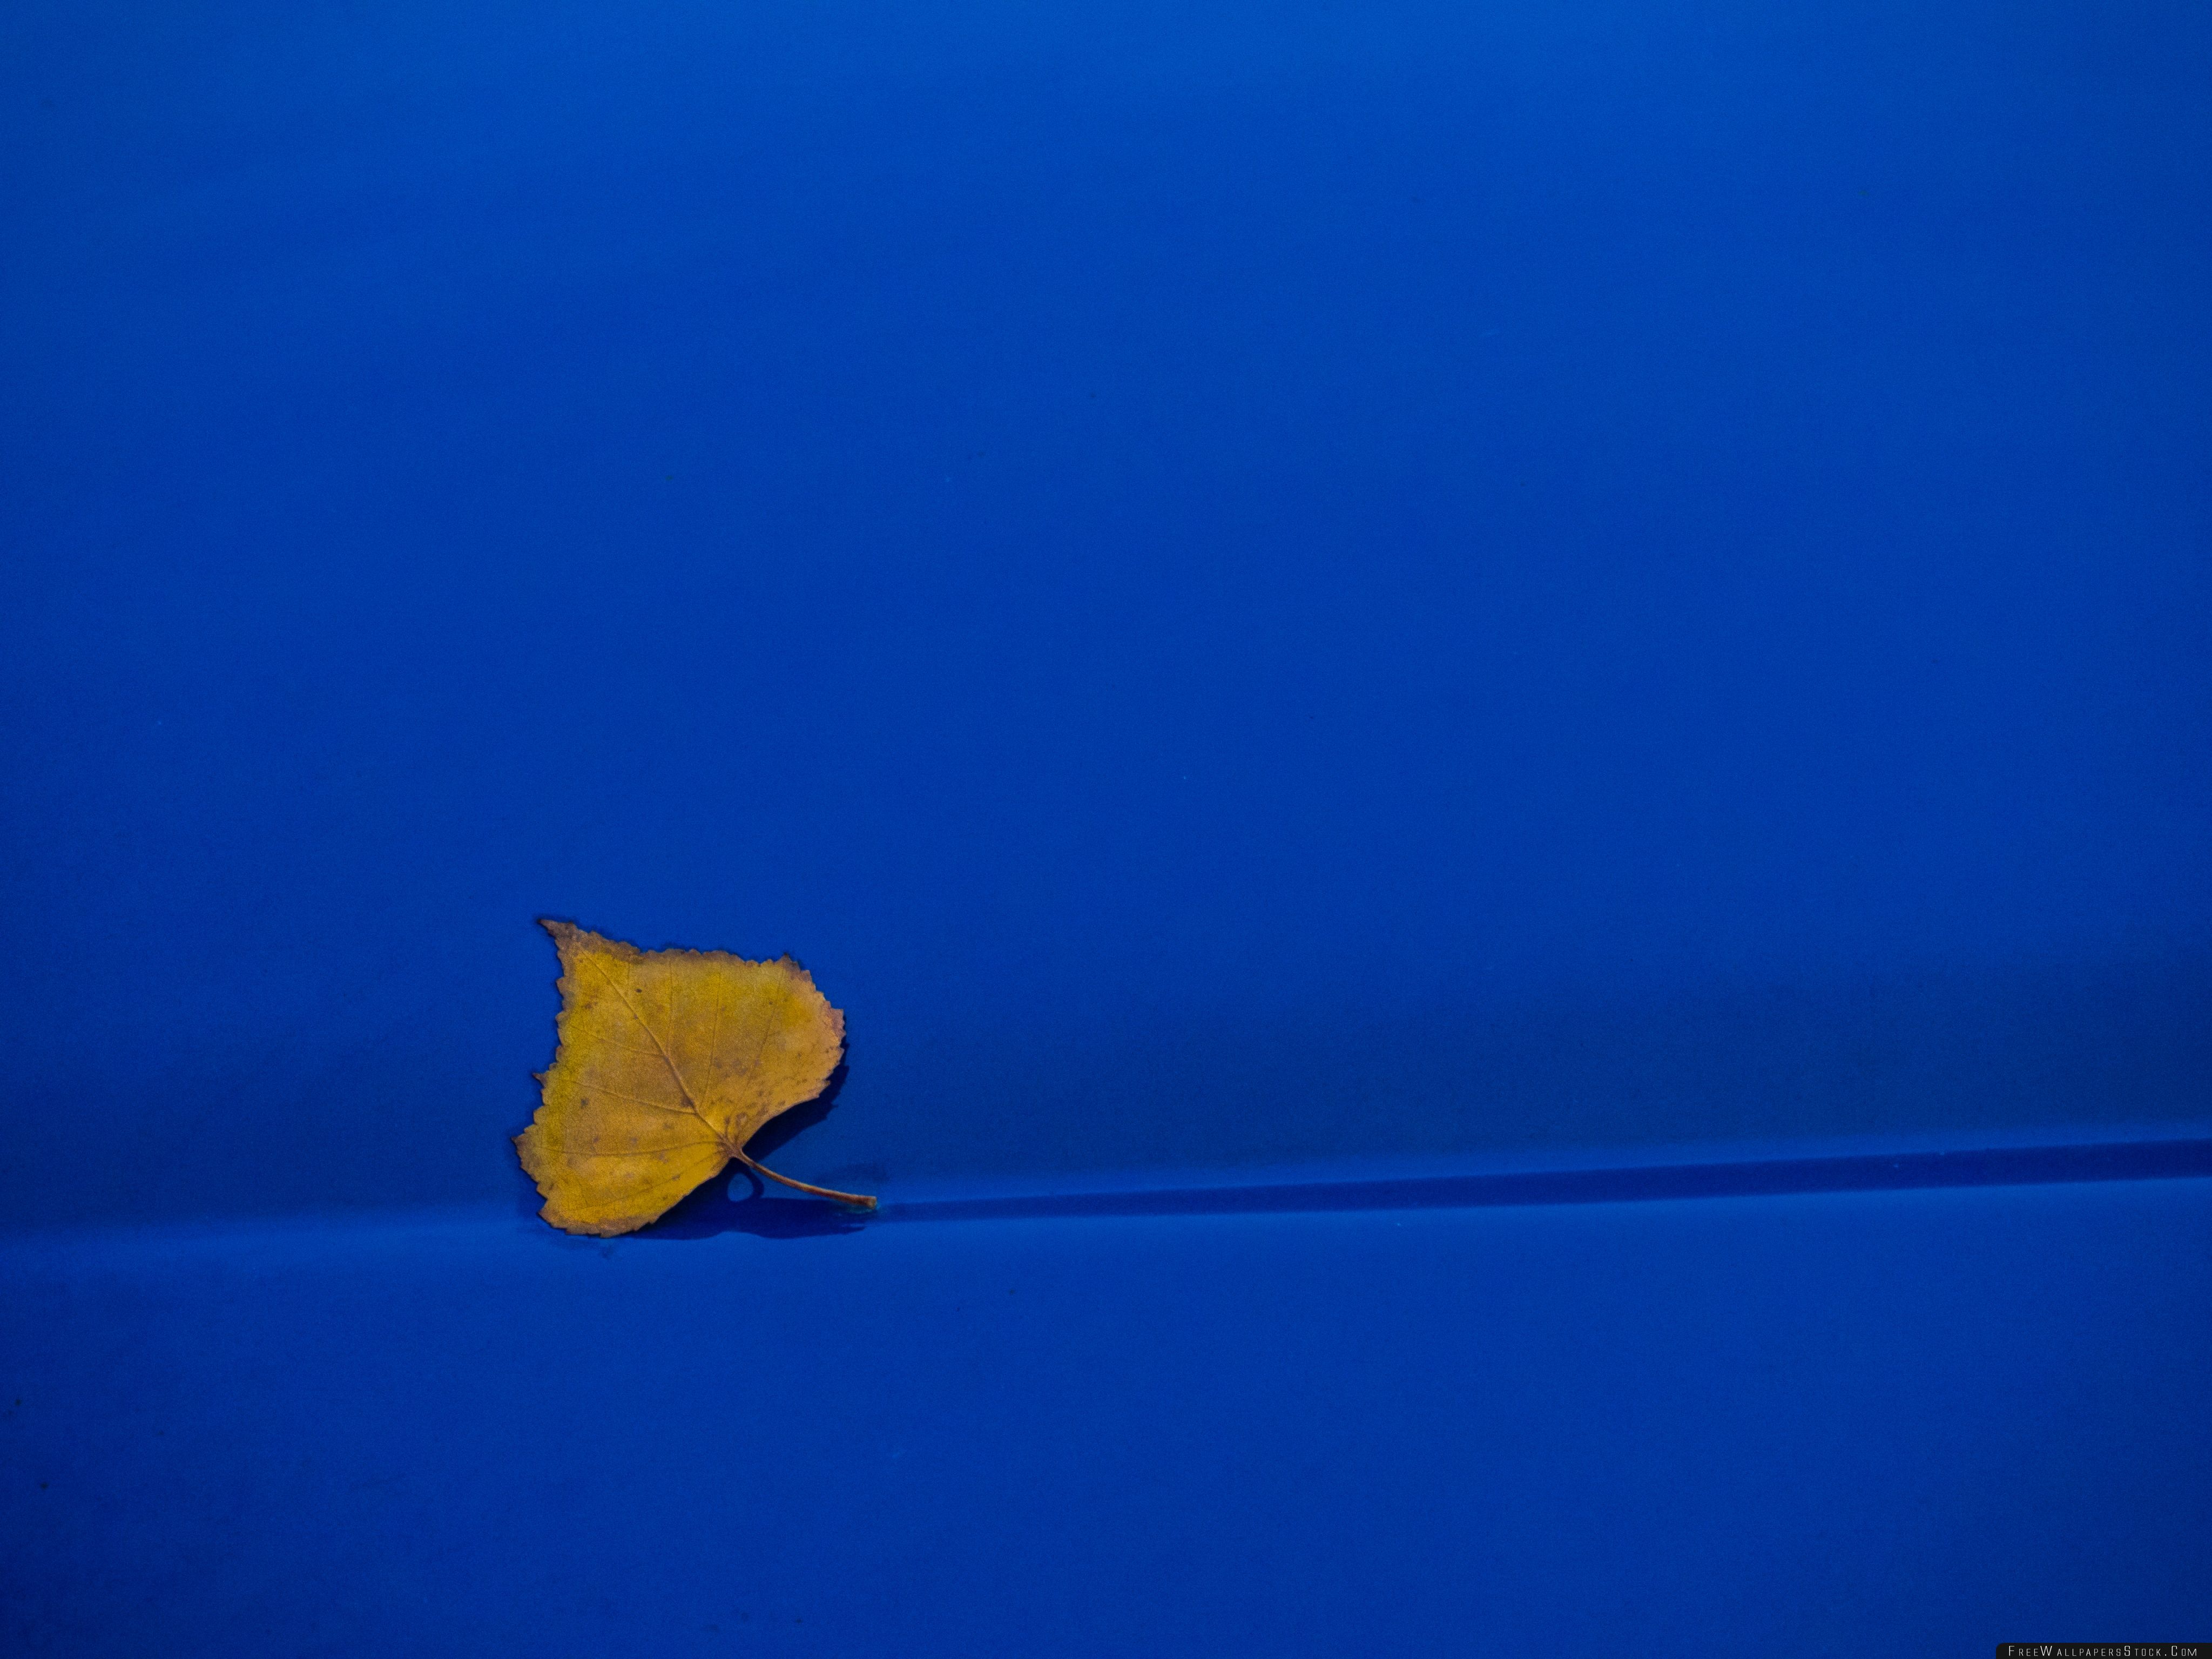 Download Free Wallpaper Yellow Leaf   Blue Background